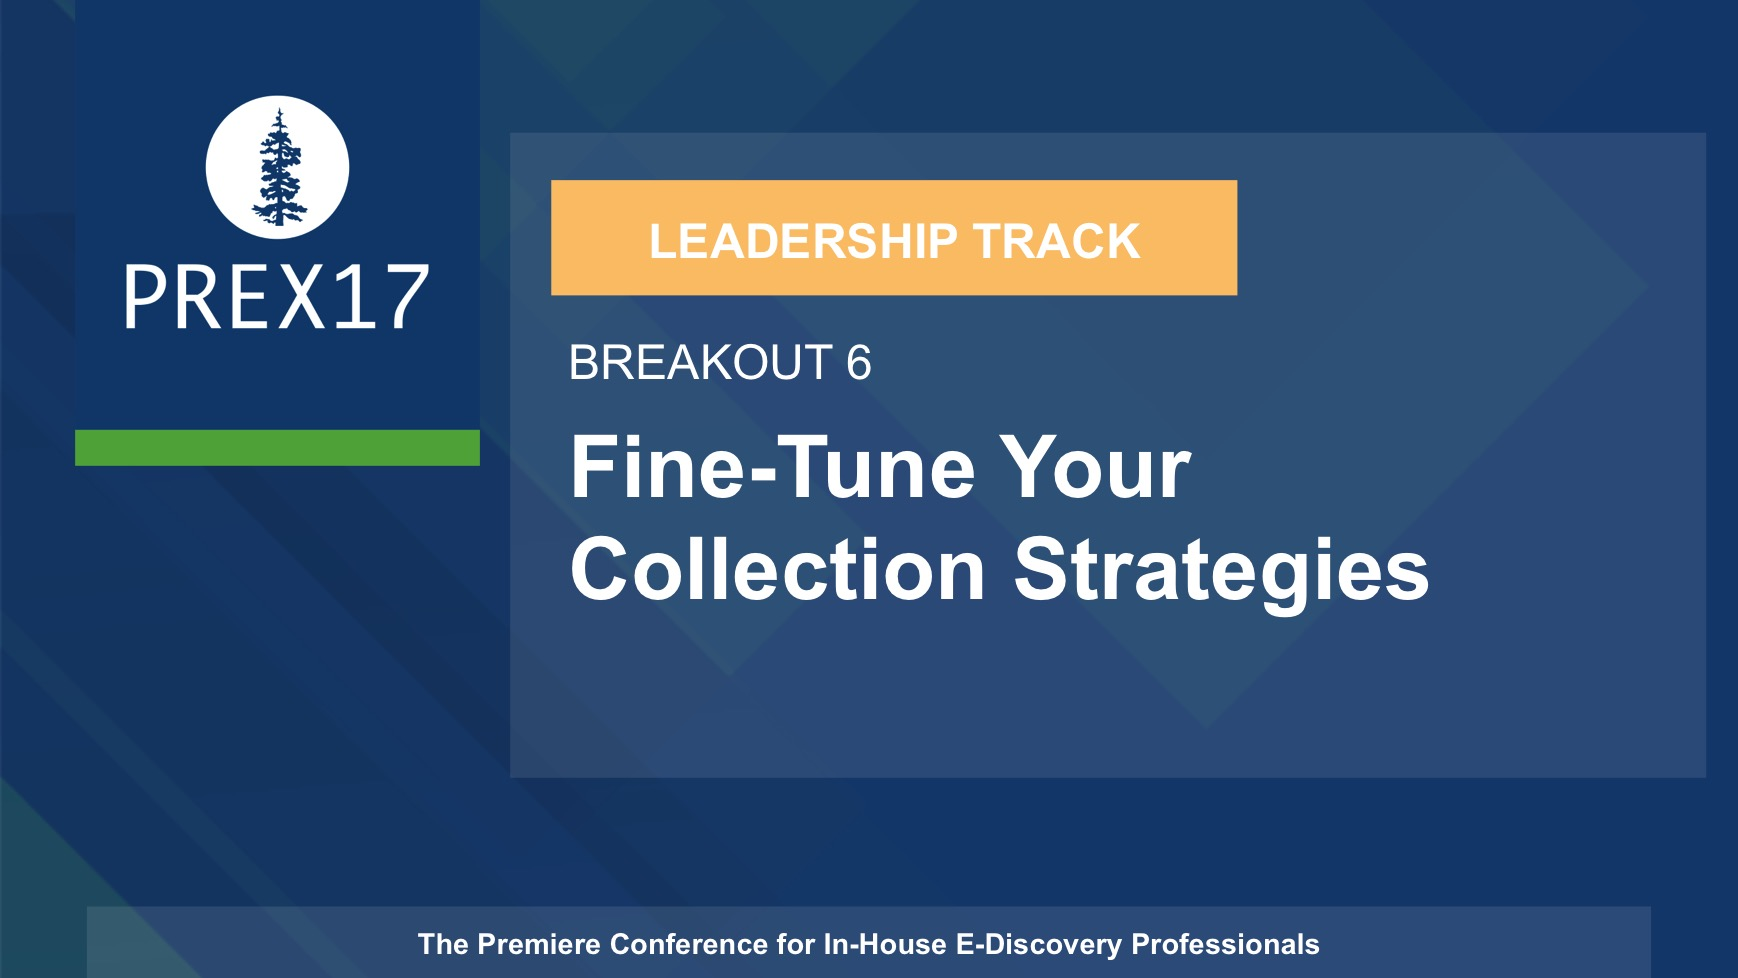 (Breakout 6 - Leadership) Fine-Tune Your Collection Strategies